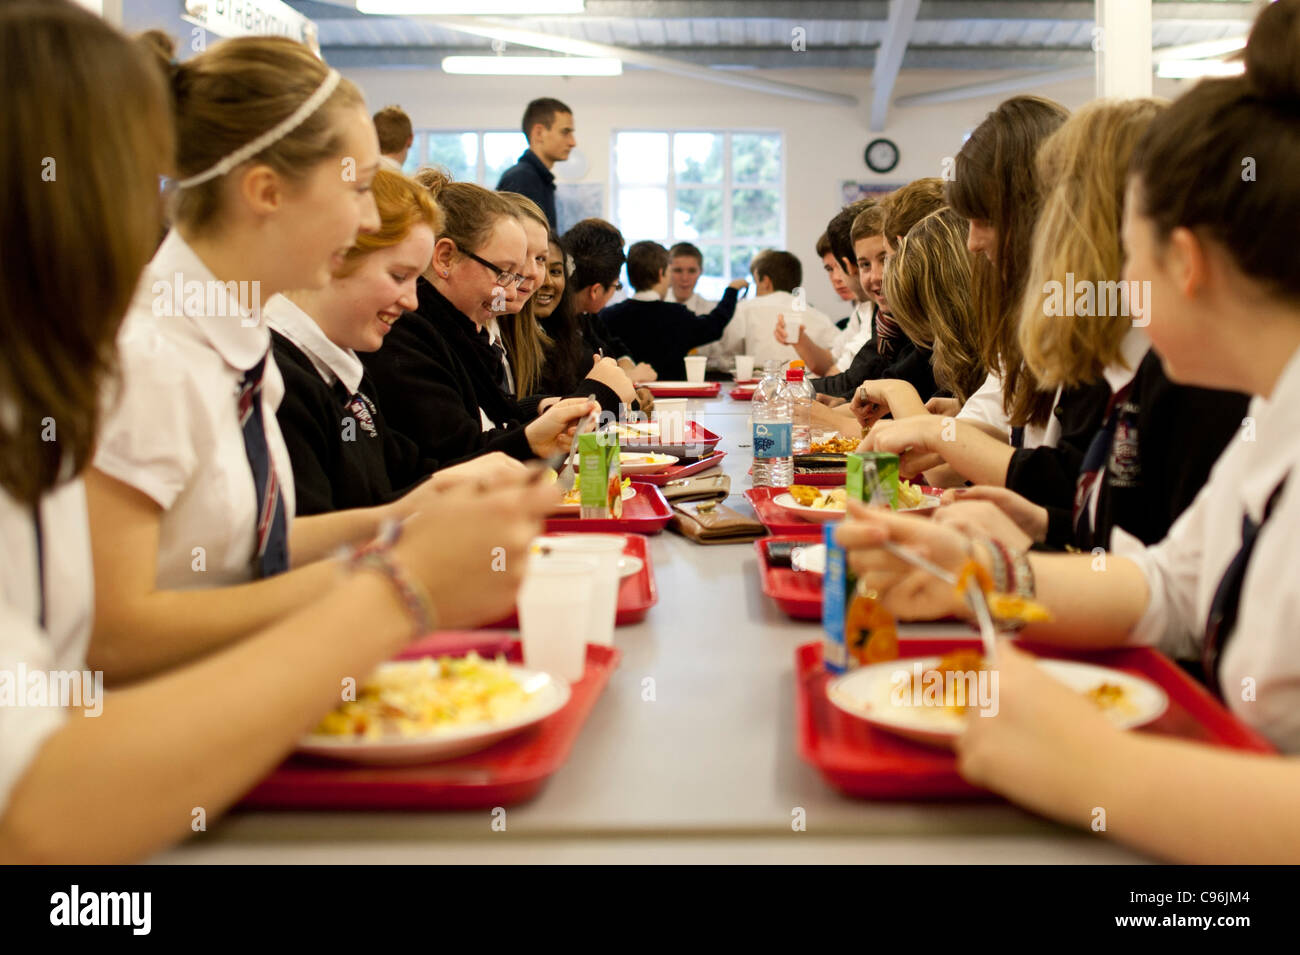 Secondary school children in the canteen having lunch, Wales UK - Stock Image